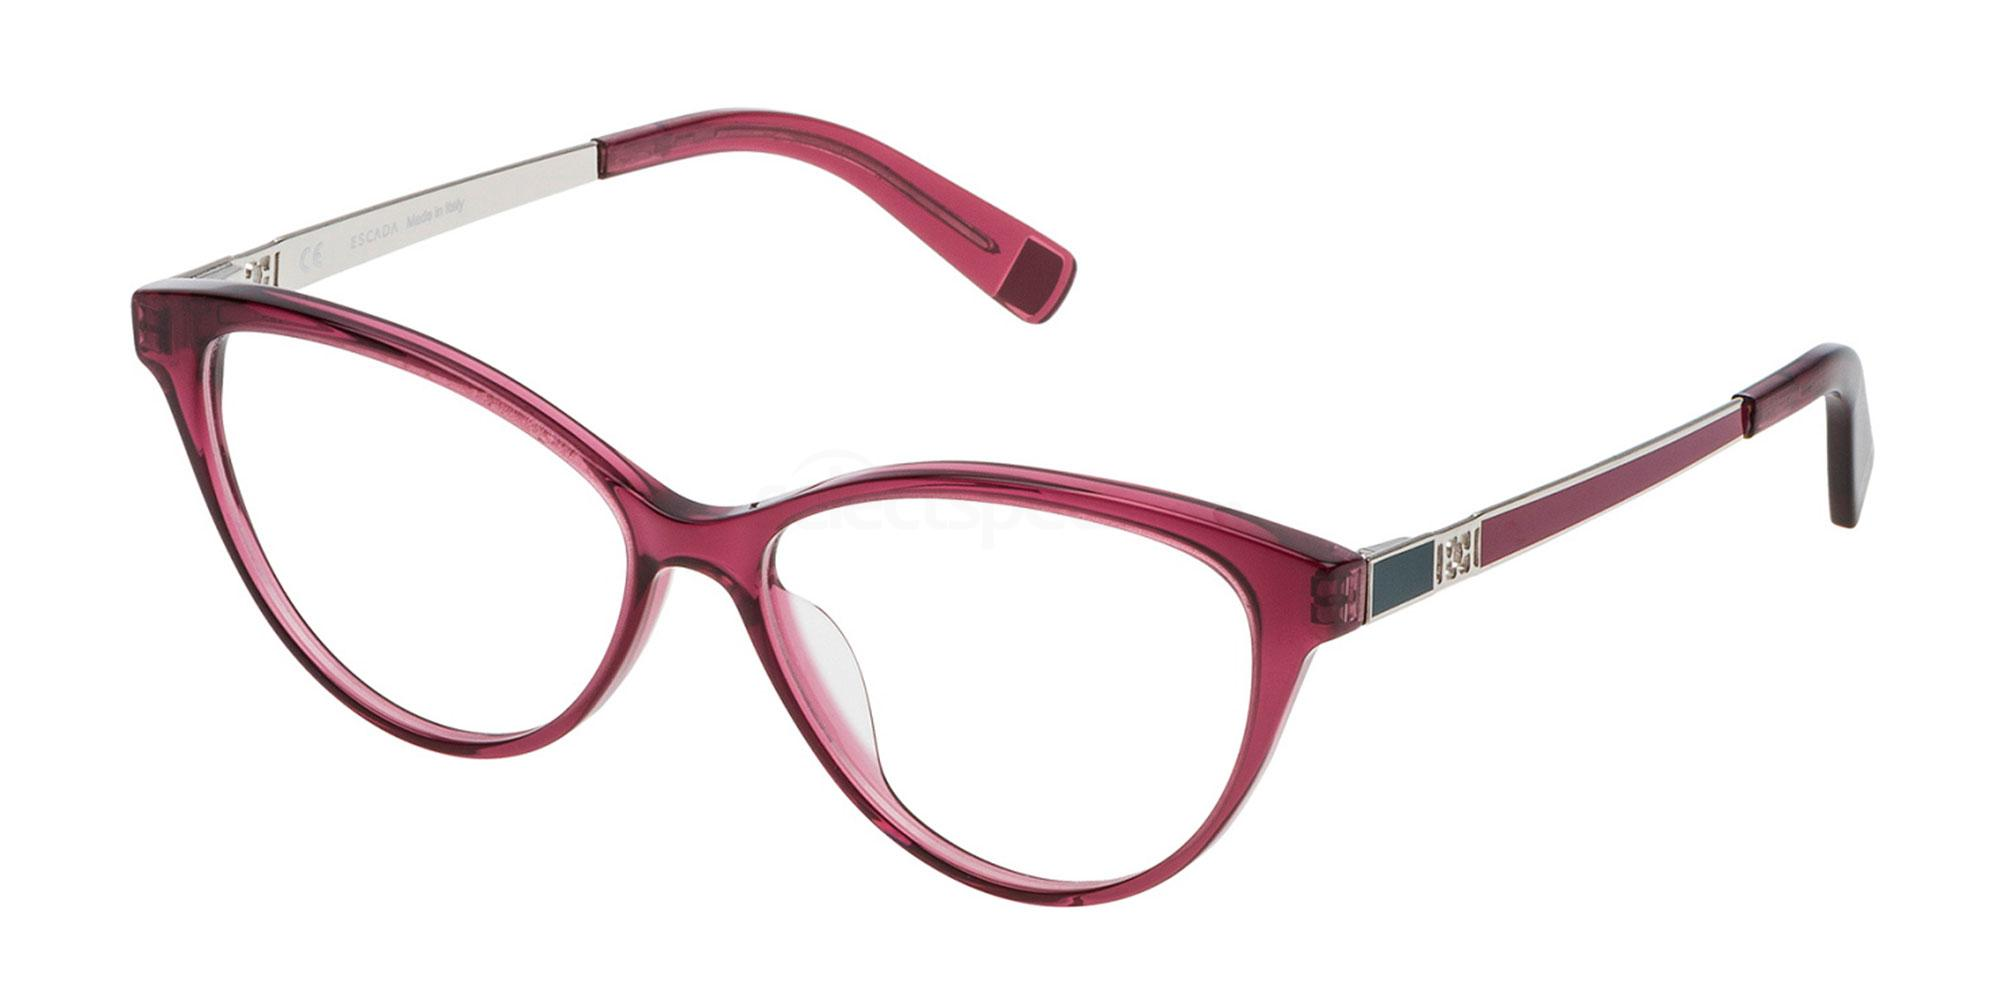 0916 VES466 Glasses, Escada